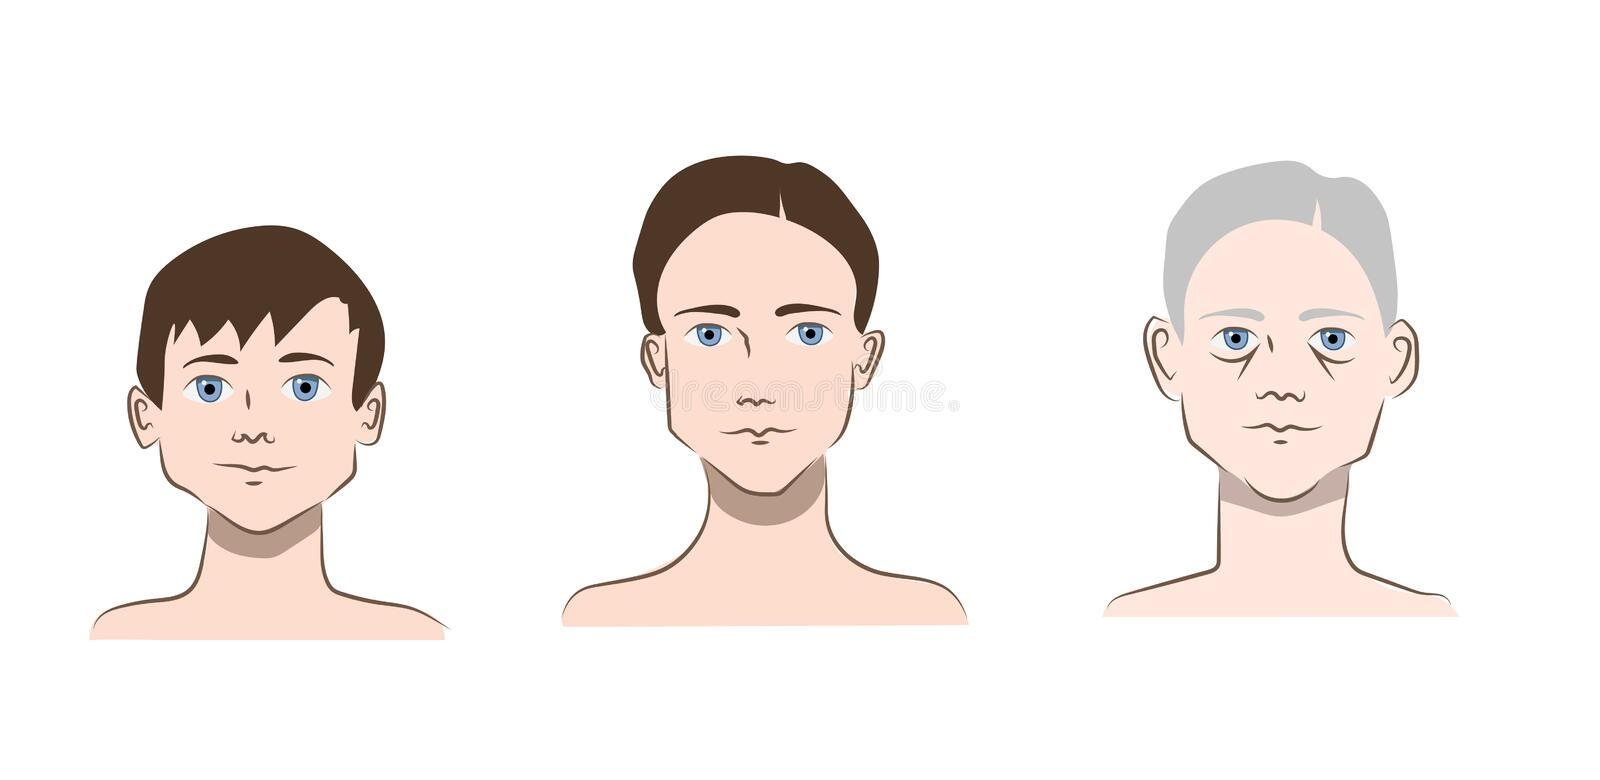 Child, young, and old man face vector illustration